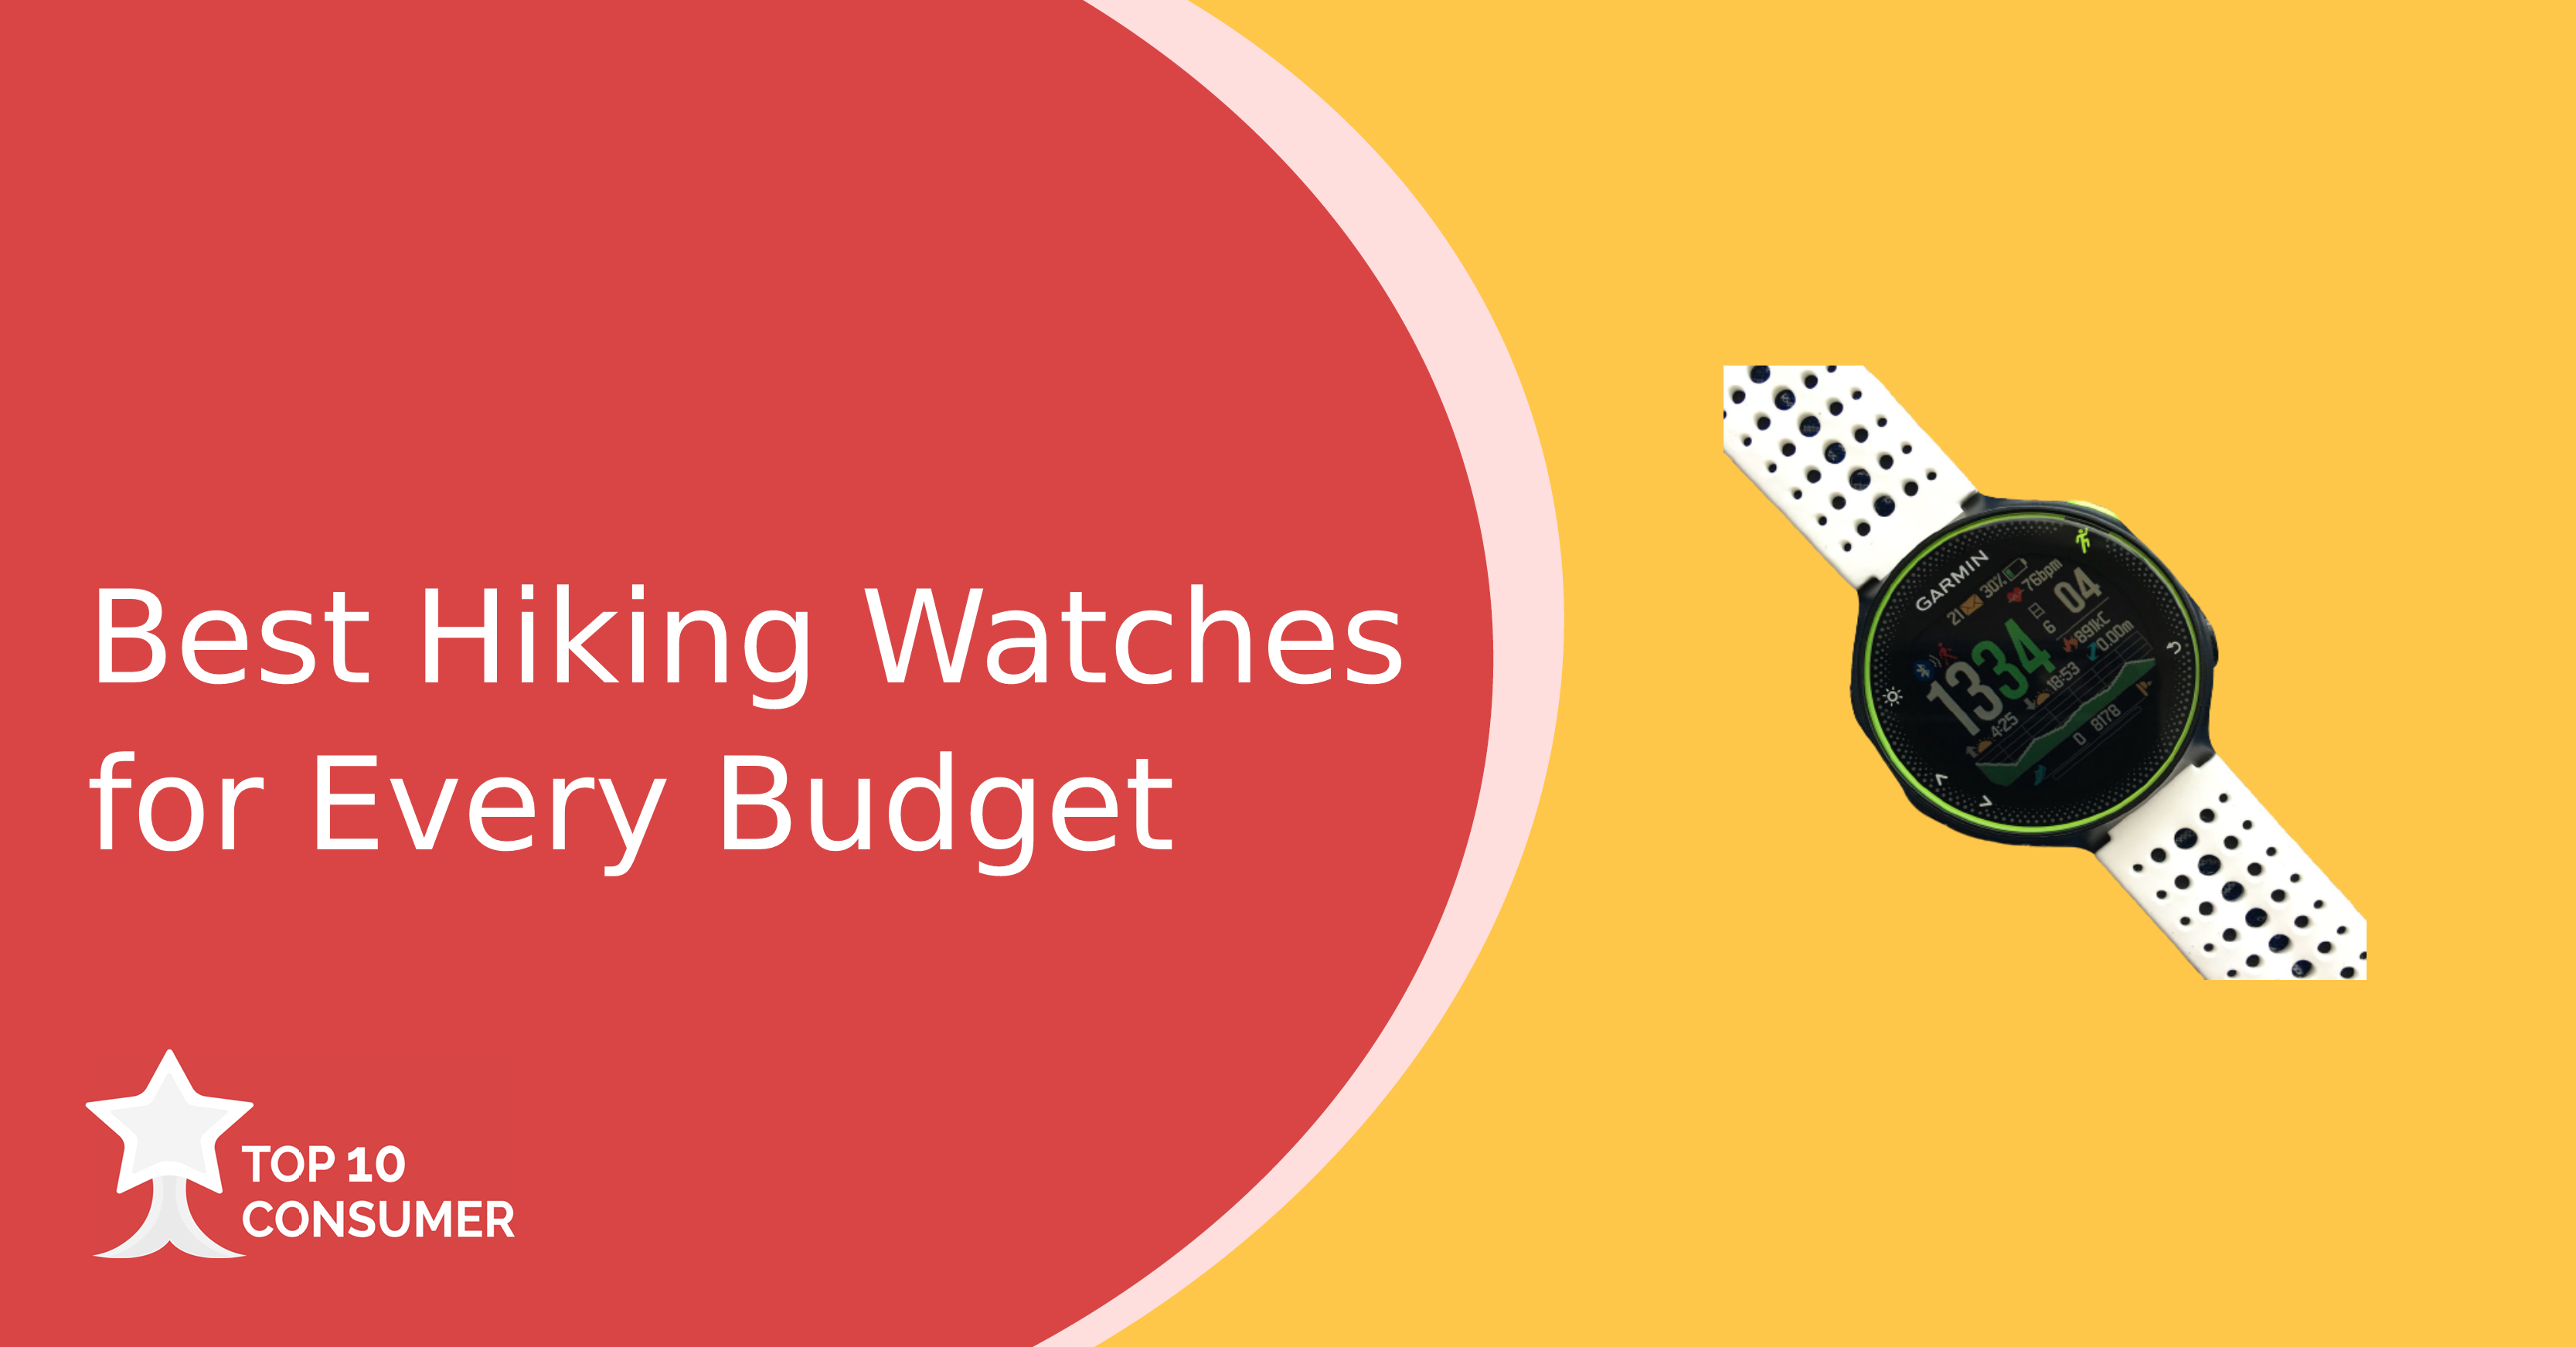 Best Hiking Watches for Every Budget